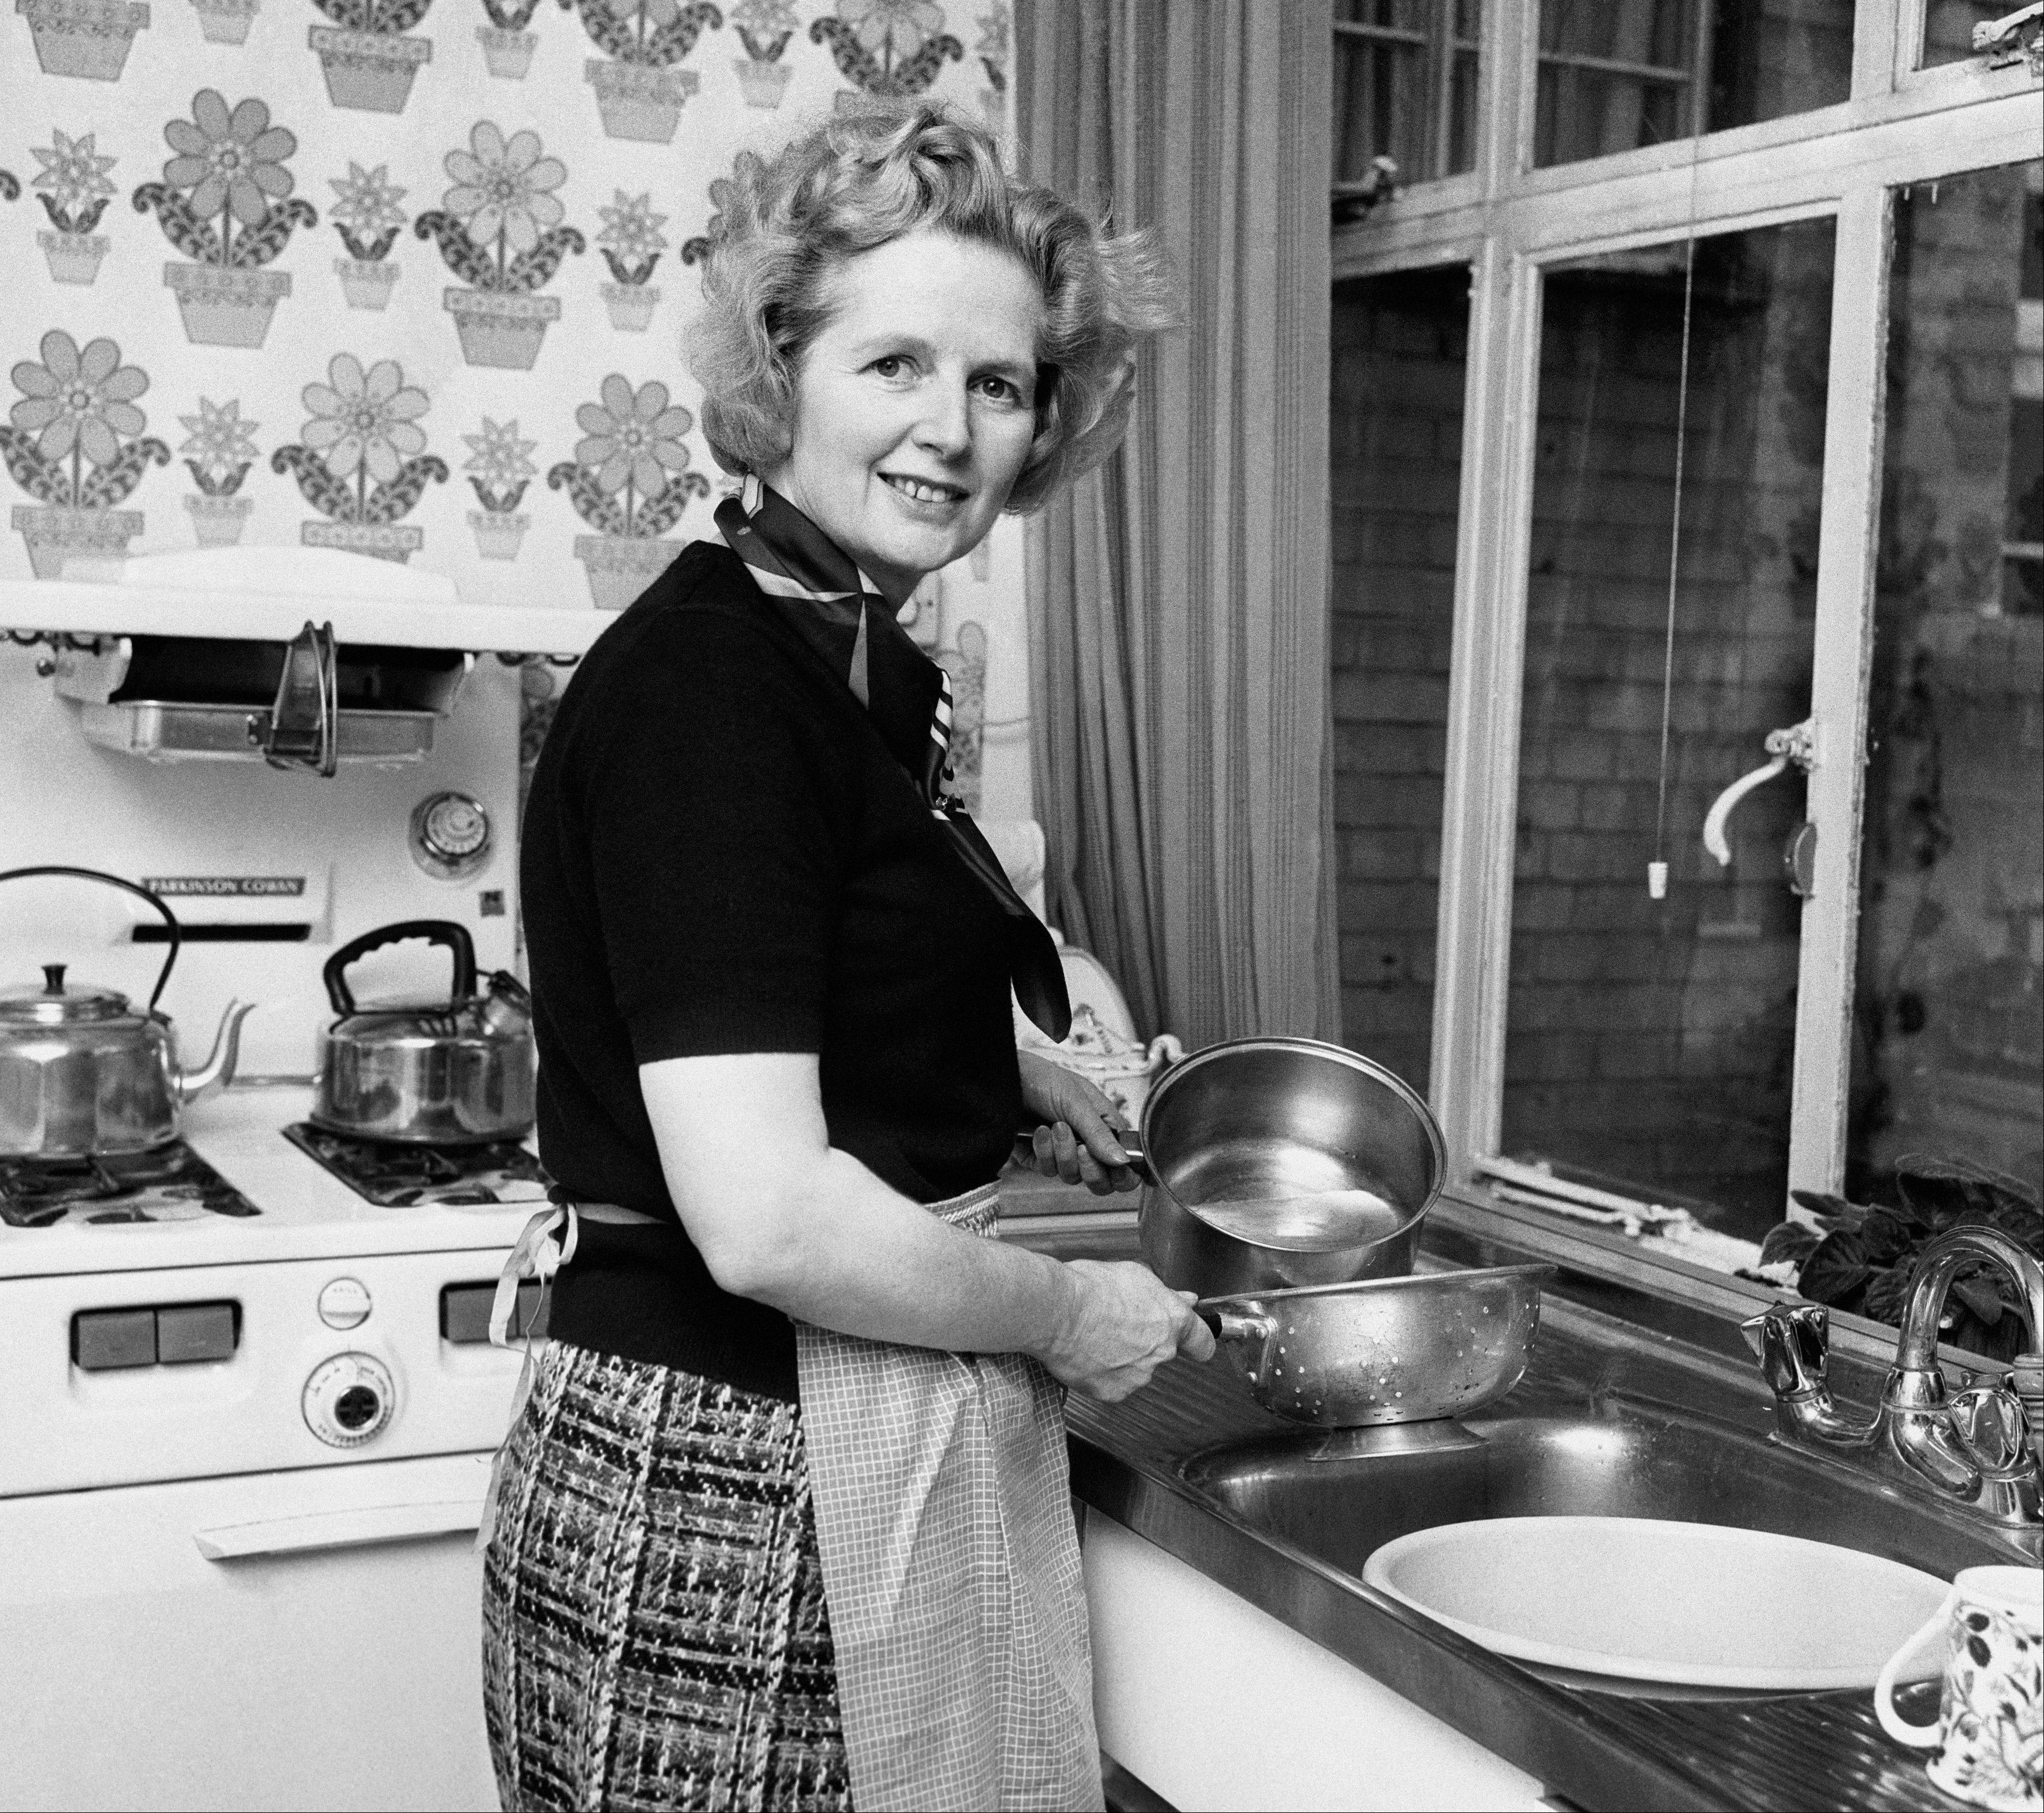 This is a Feb, 1, 1975 file photo of the them Conservative Member of Parliament Margaret Thatcher, in her Chelsea home kitchen. Former British Prime Minister Margaret Thatcher, whose conservative ideas made an enduring impact on Britain died Monday April 8, 2013. She was 87.